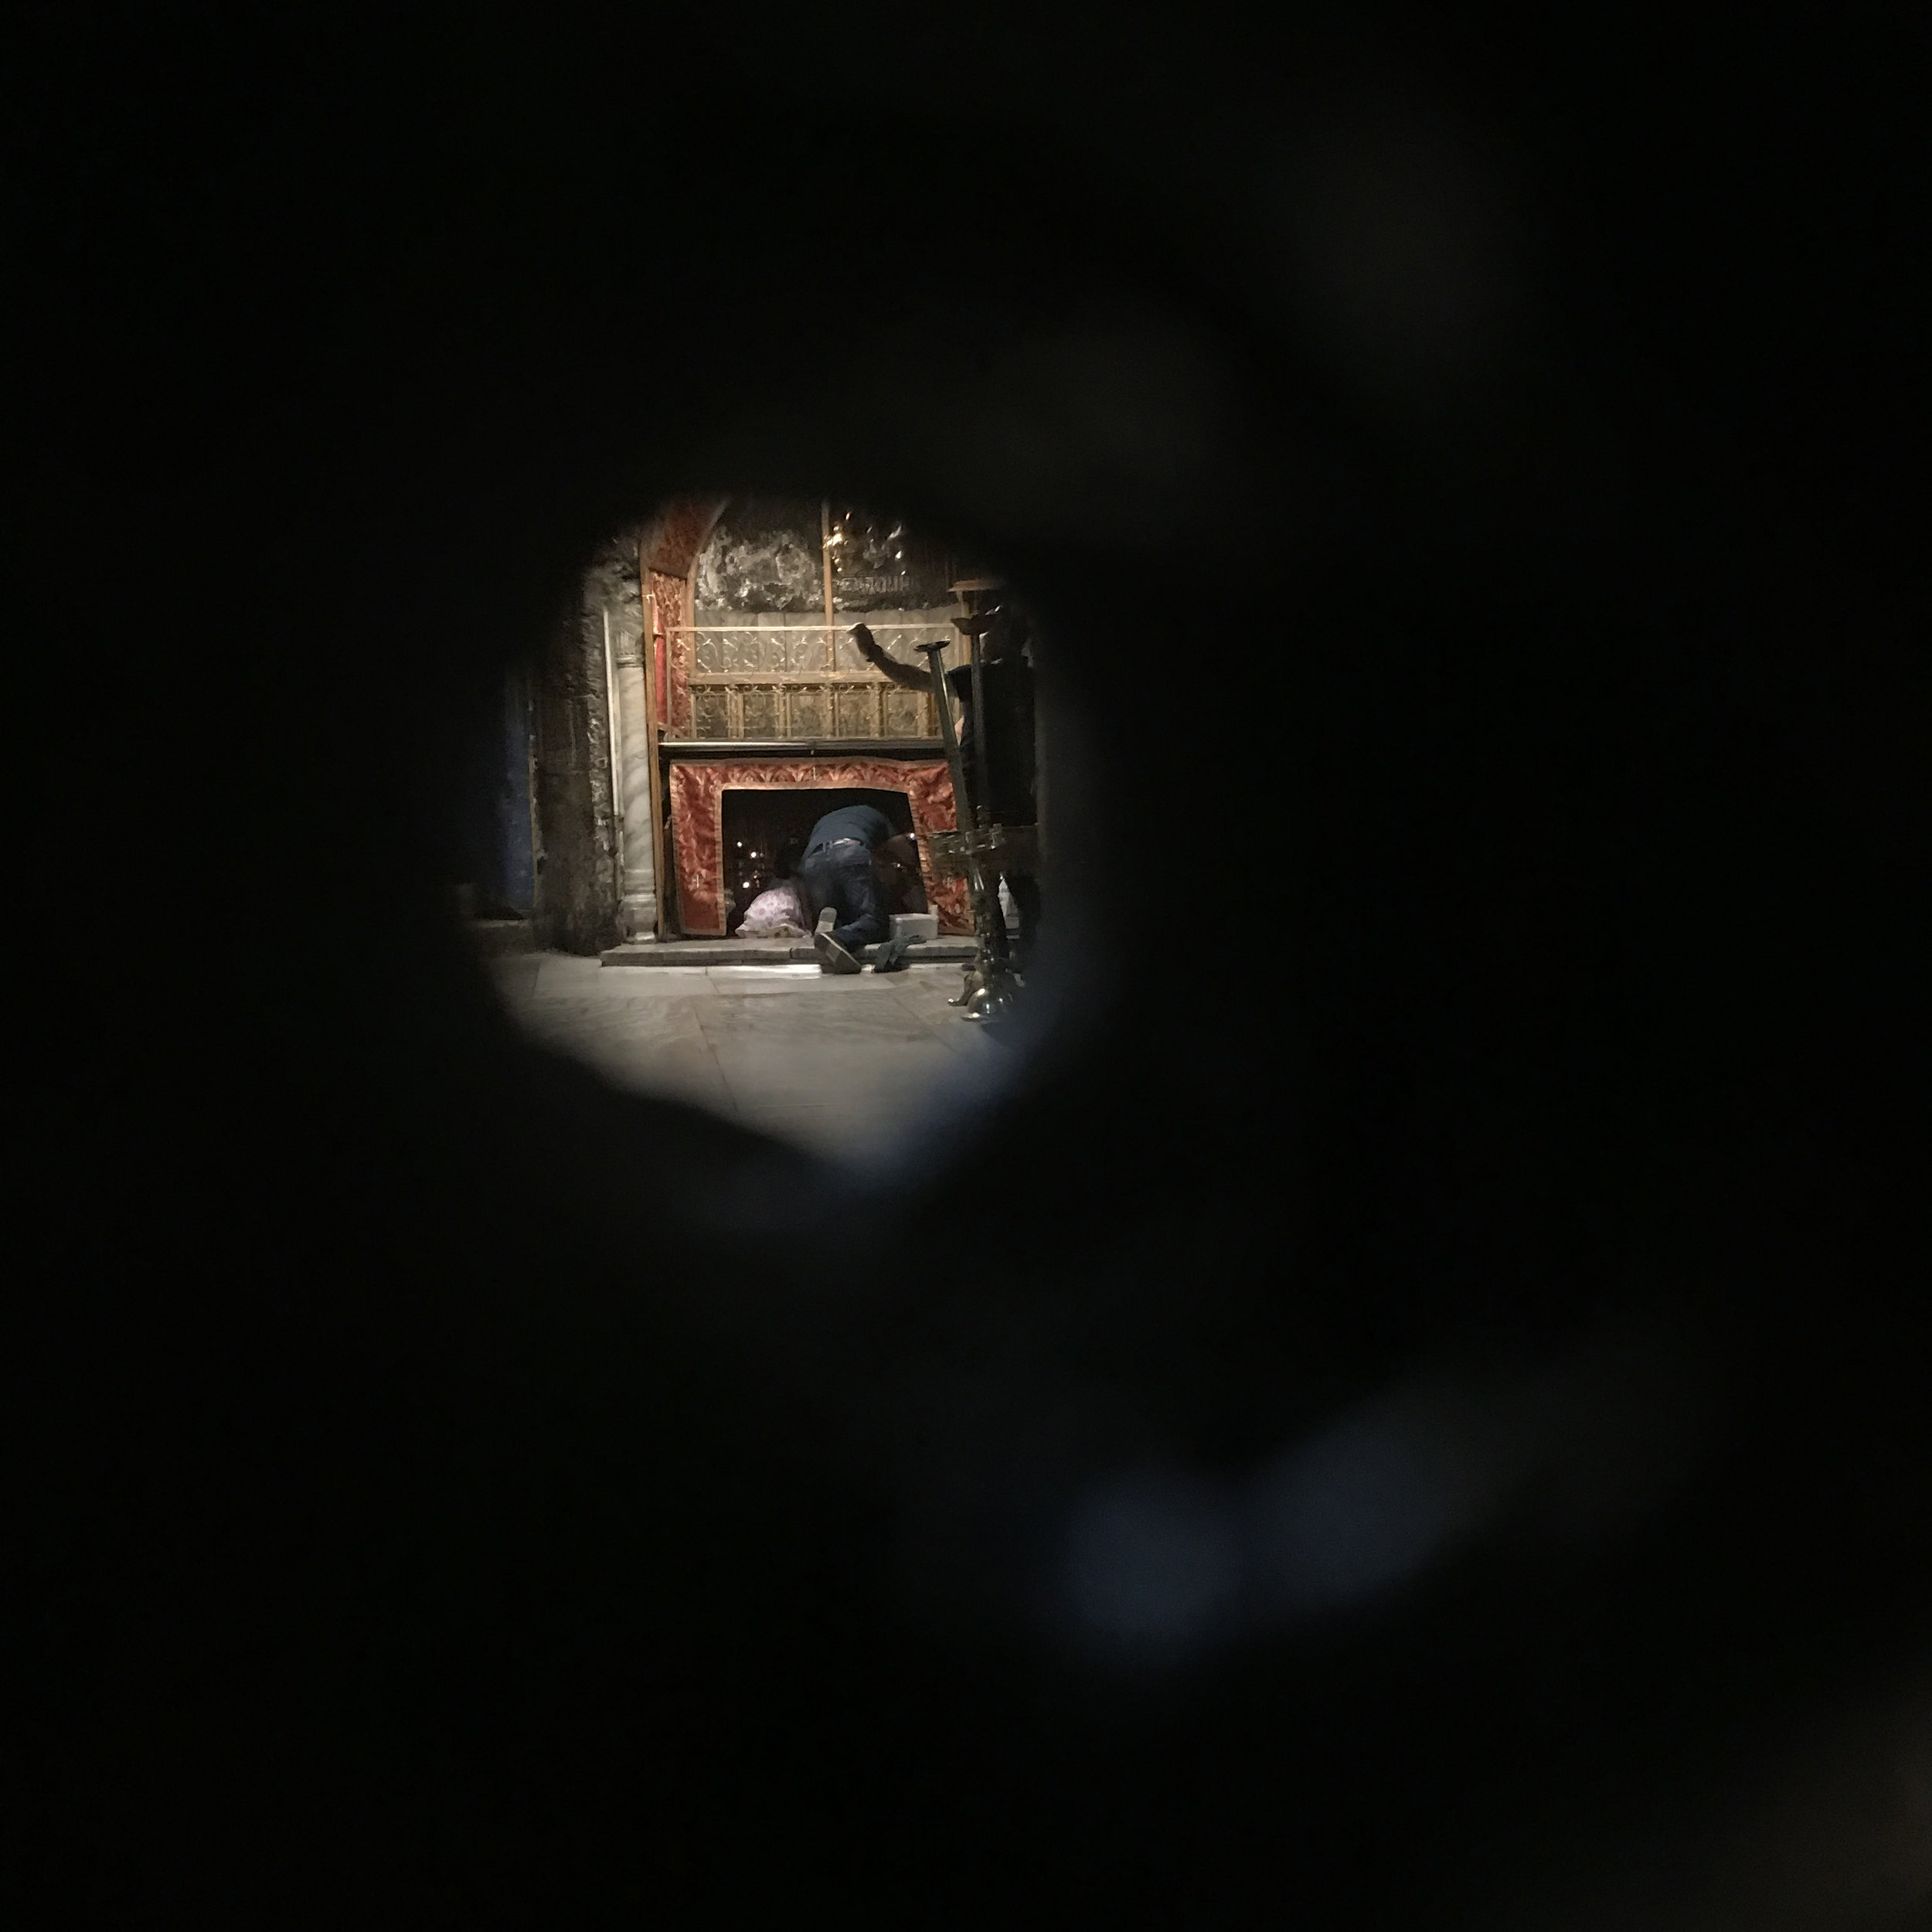 Peephole that views the alter from another room